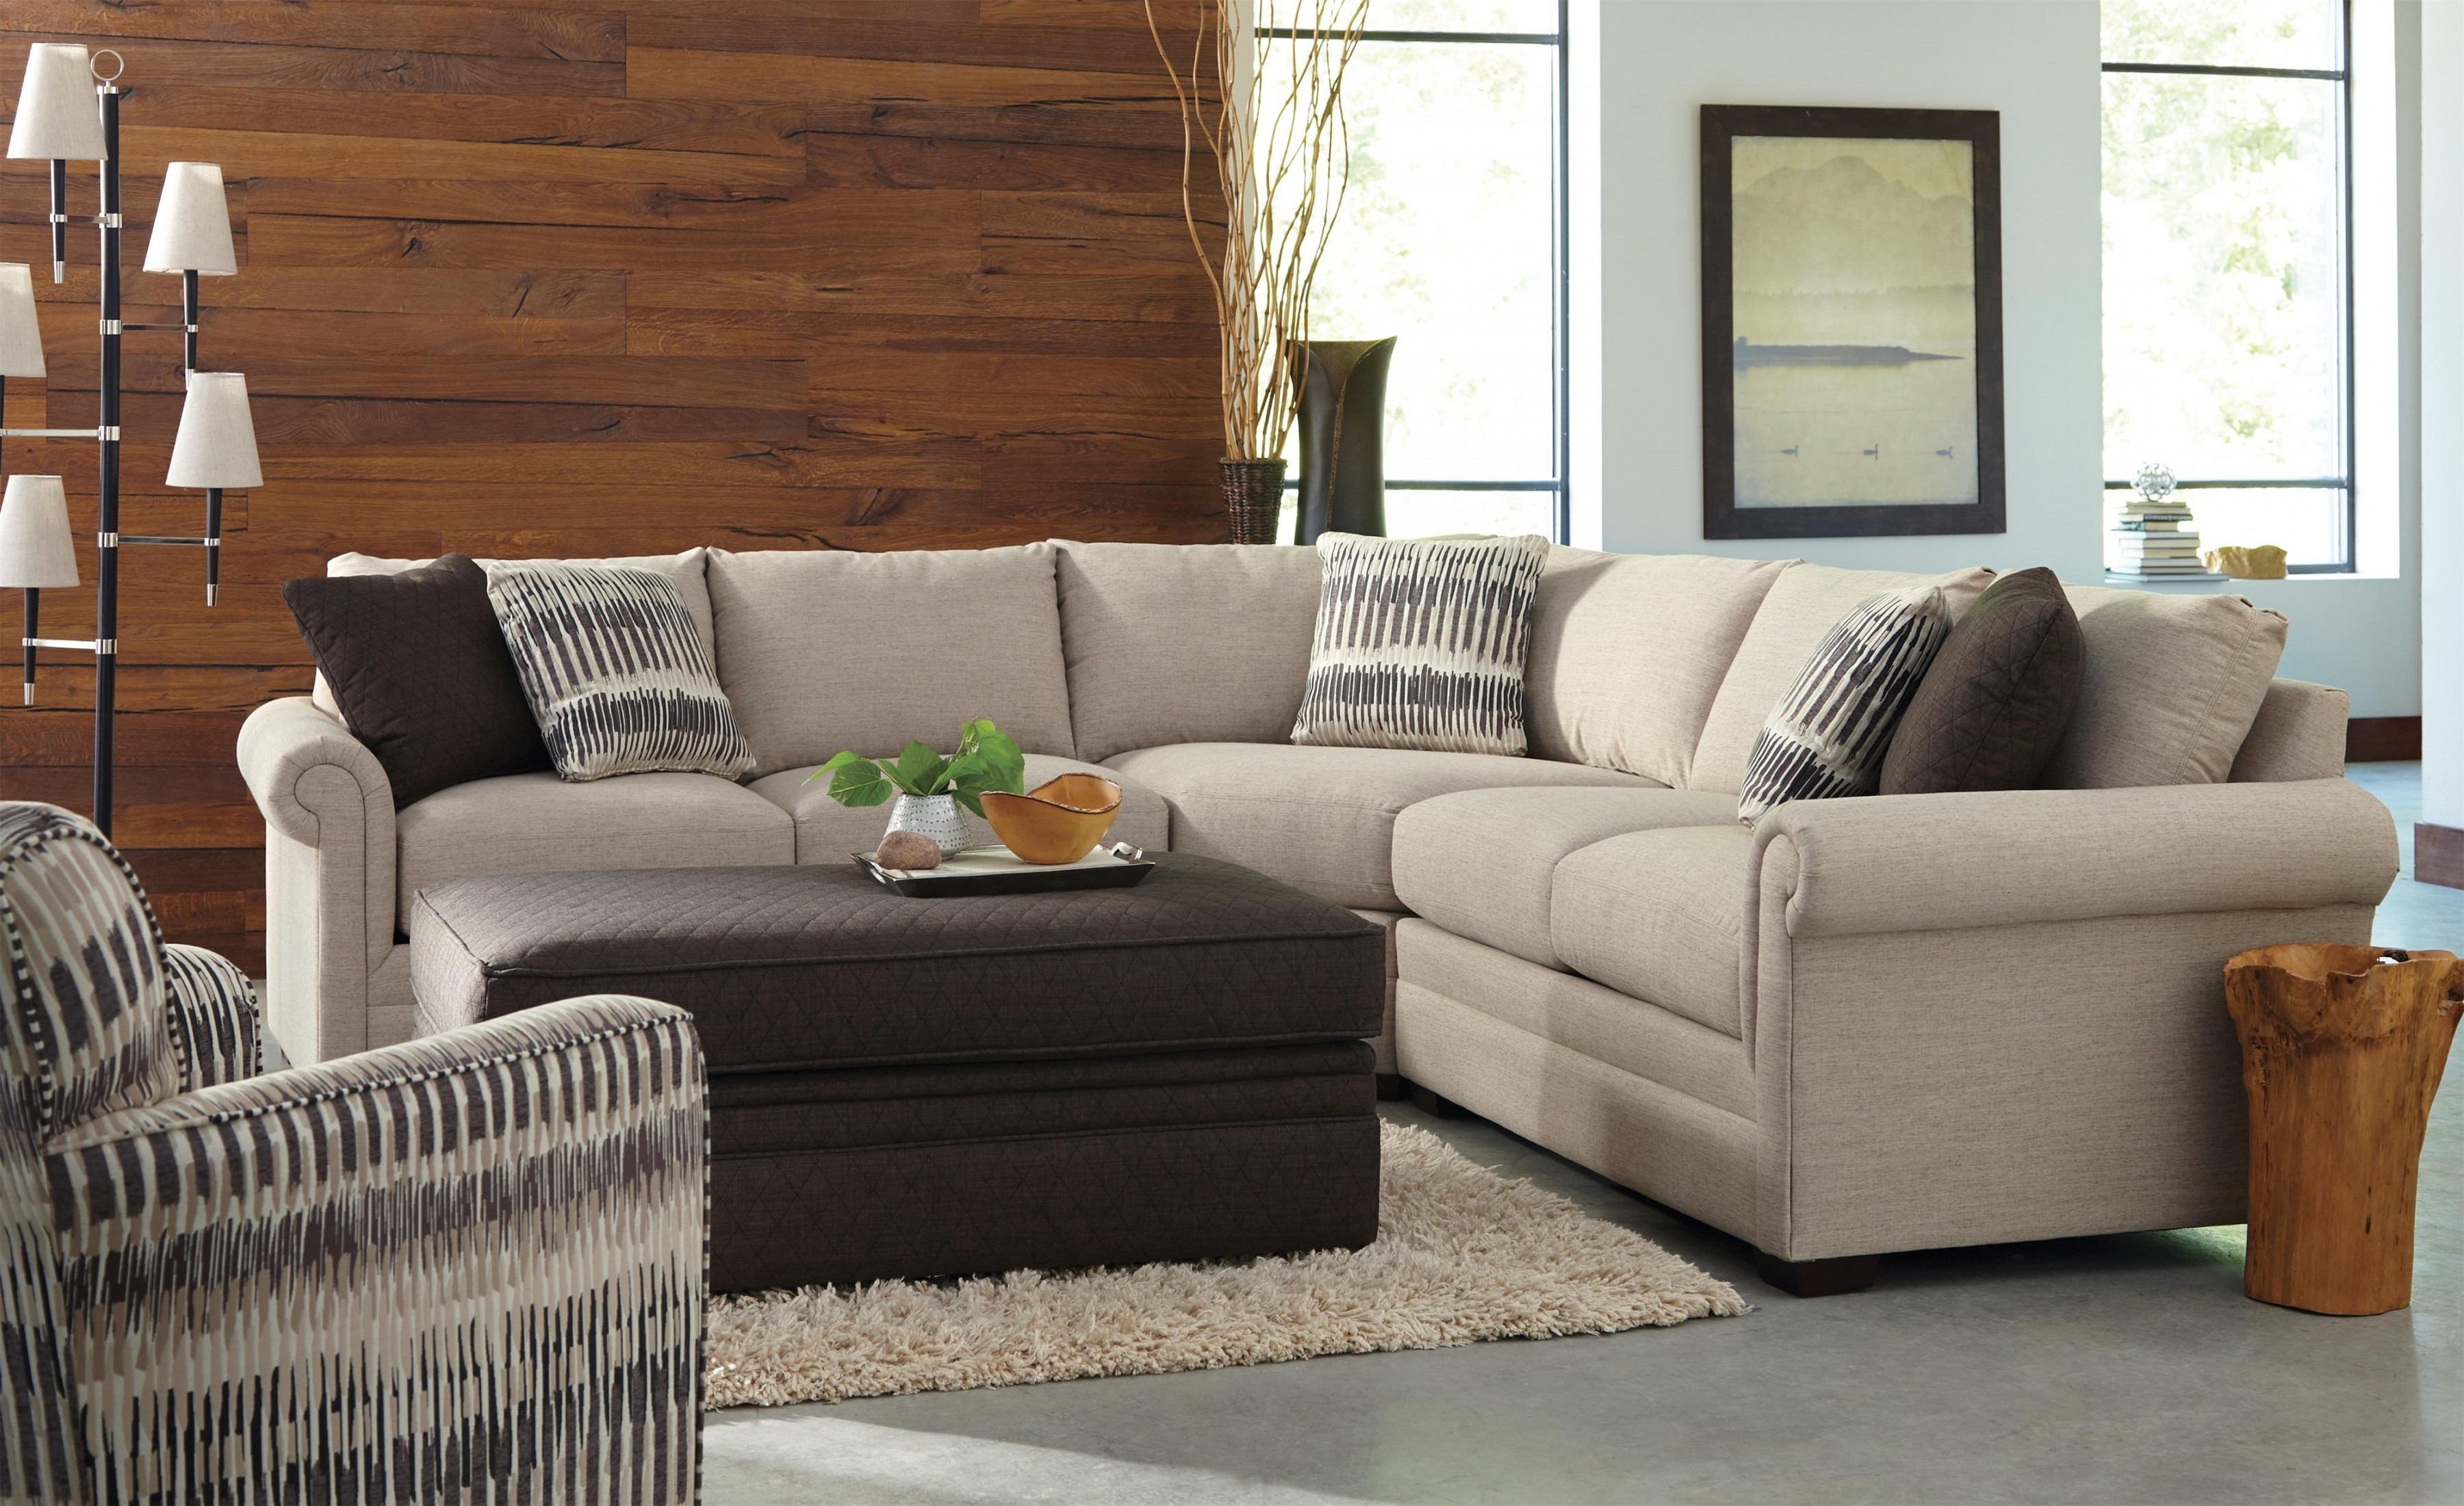 Dillards Sectional Sofas For Widely Used Leather Sofa Dillards (View 5 of 20)